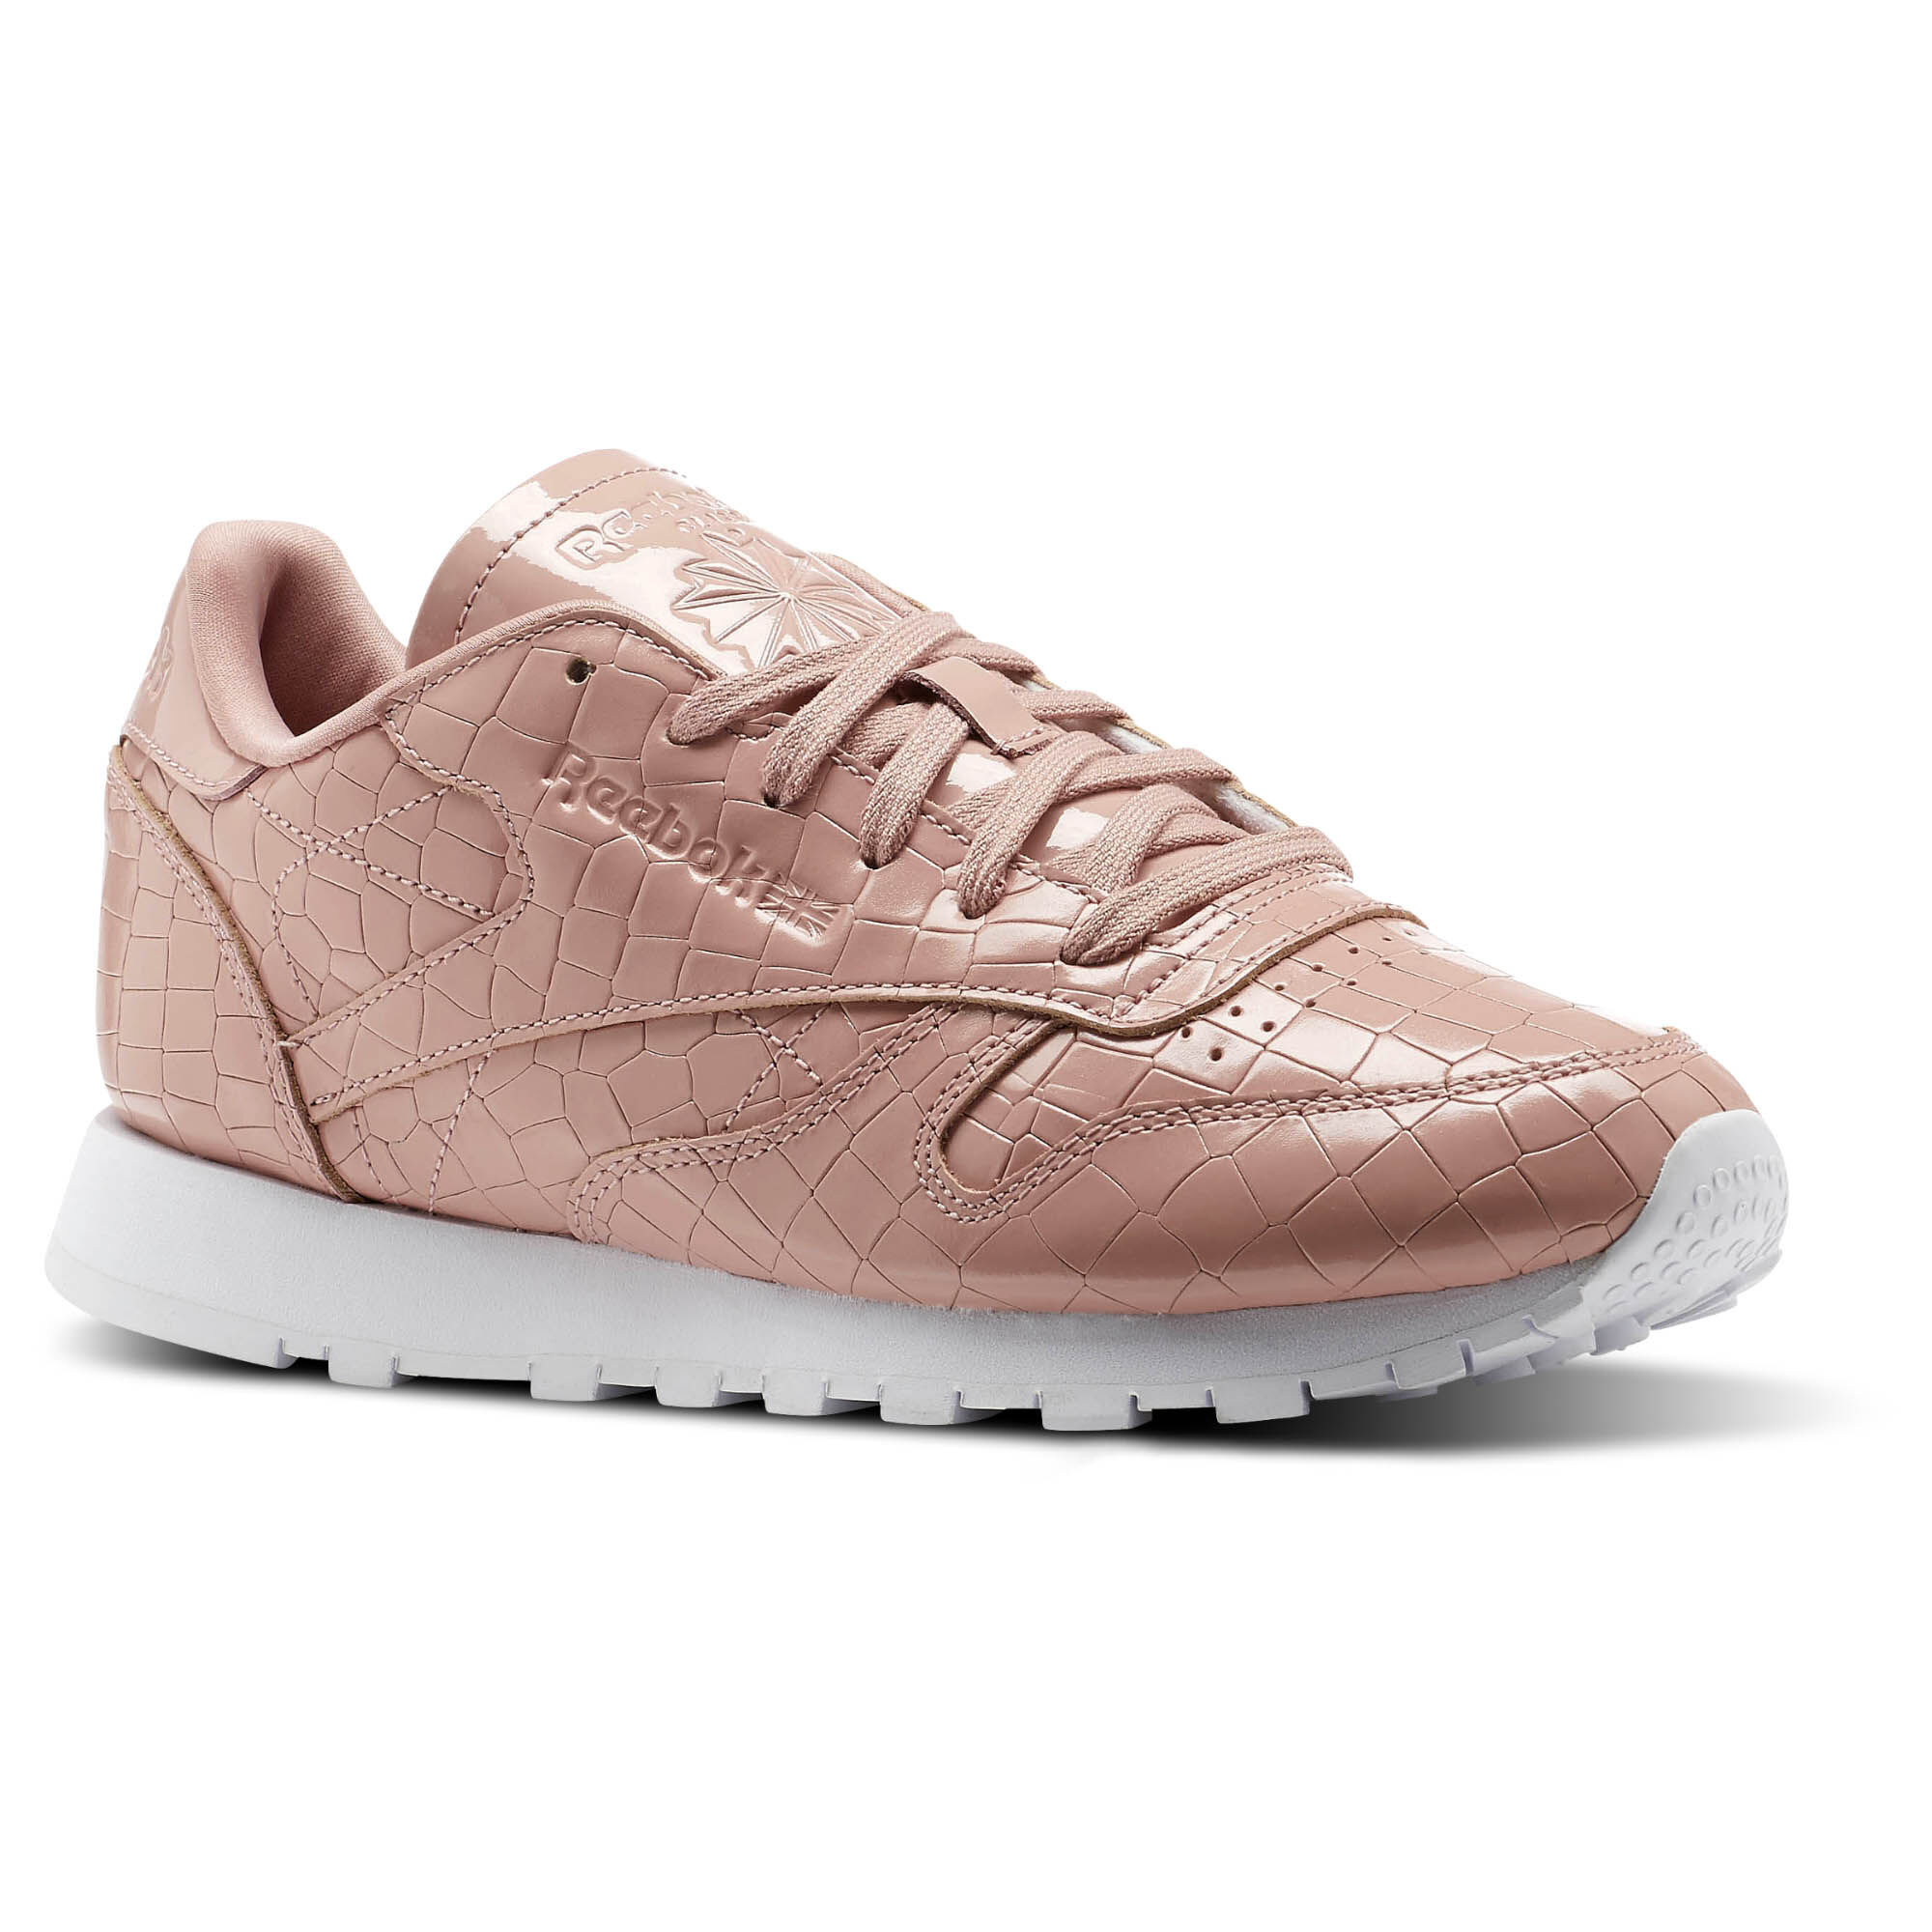 Reebok Classic Leather - Women's Casual - Chalk Pink/White BS9870